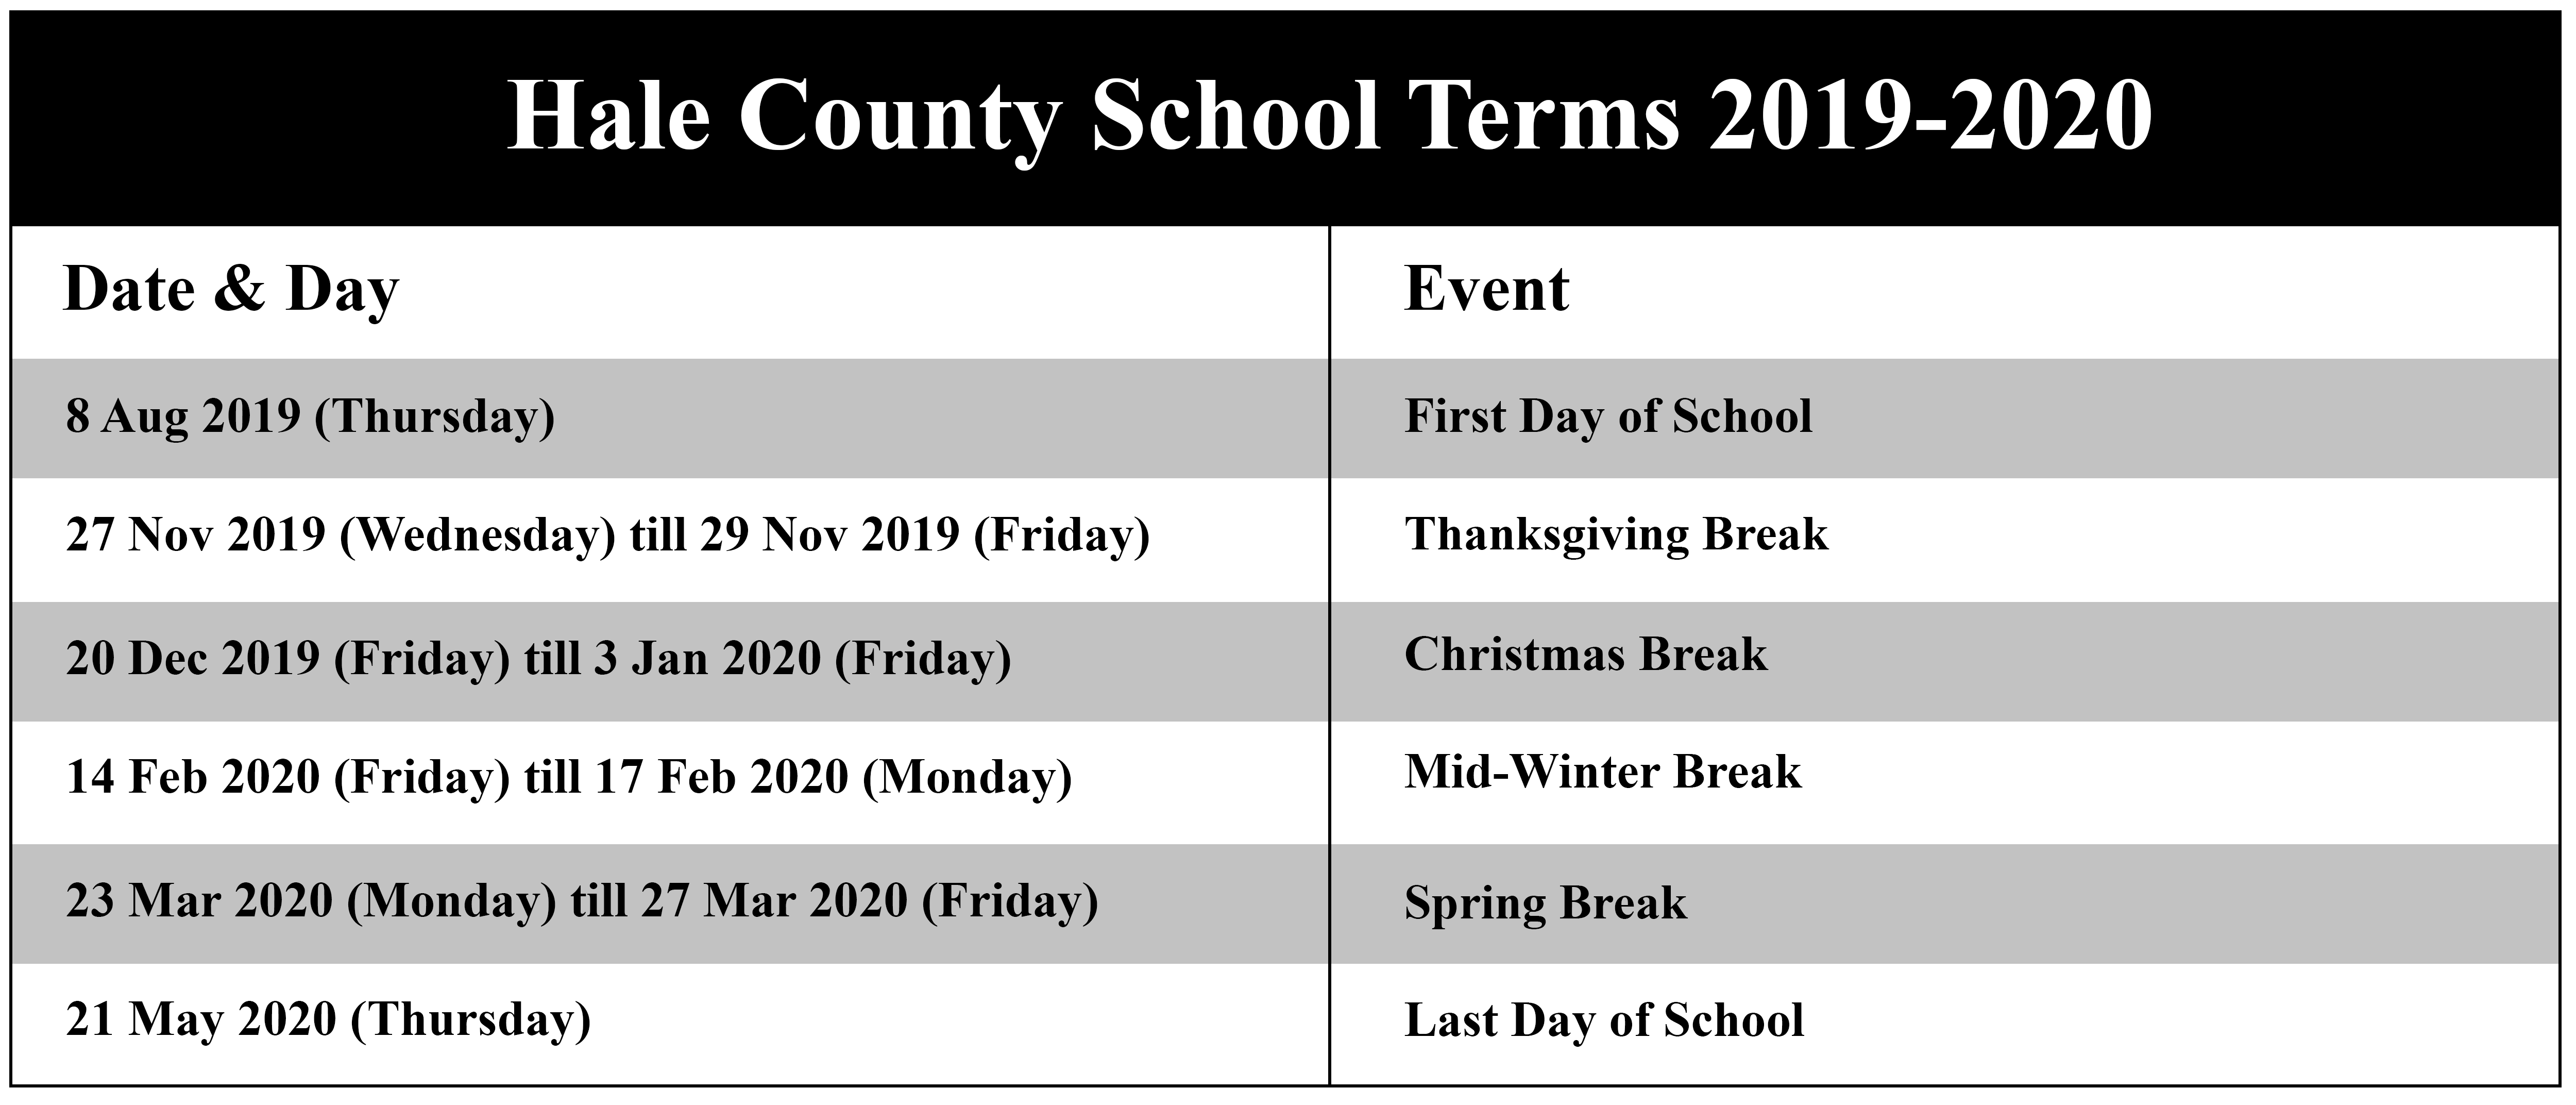 Hale County School Terms